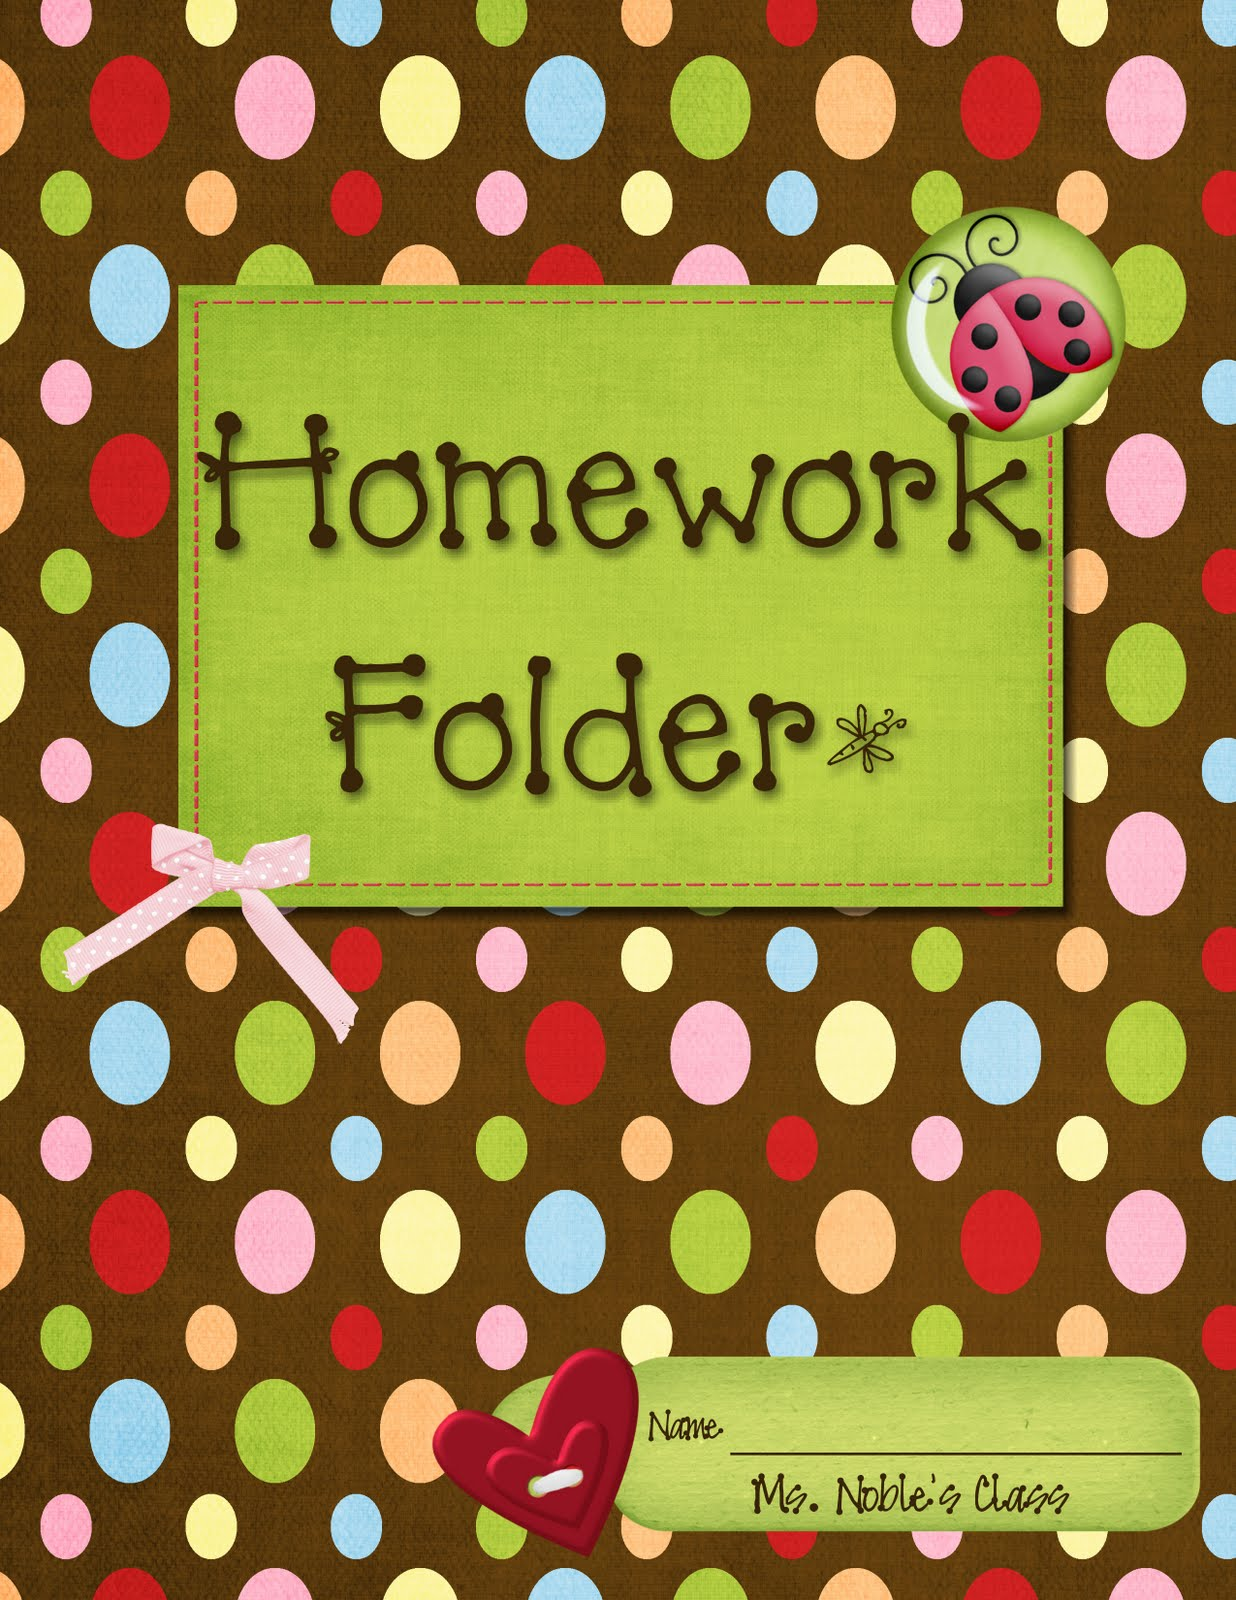 Homework Book Cover Printable ~ Caffeinated conclusions management monday student